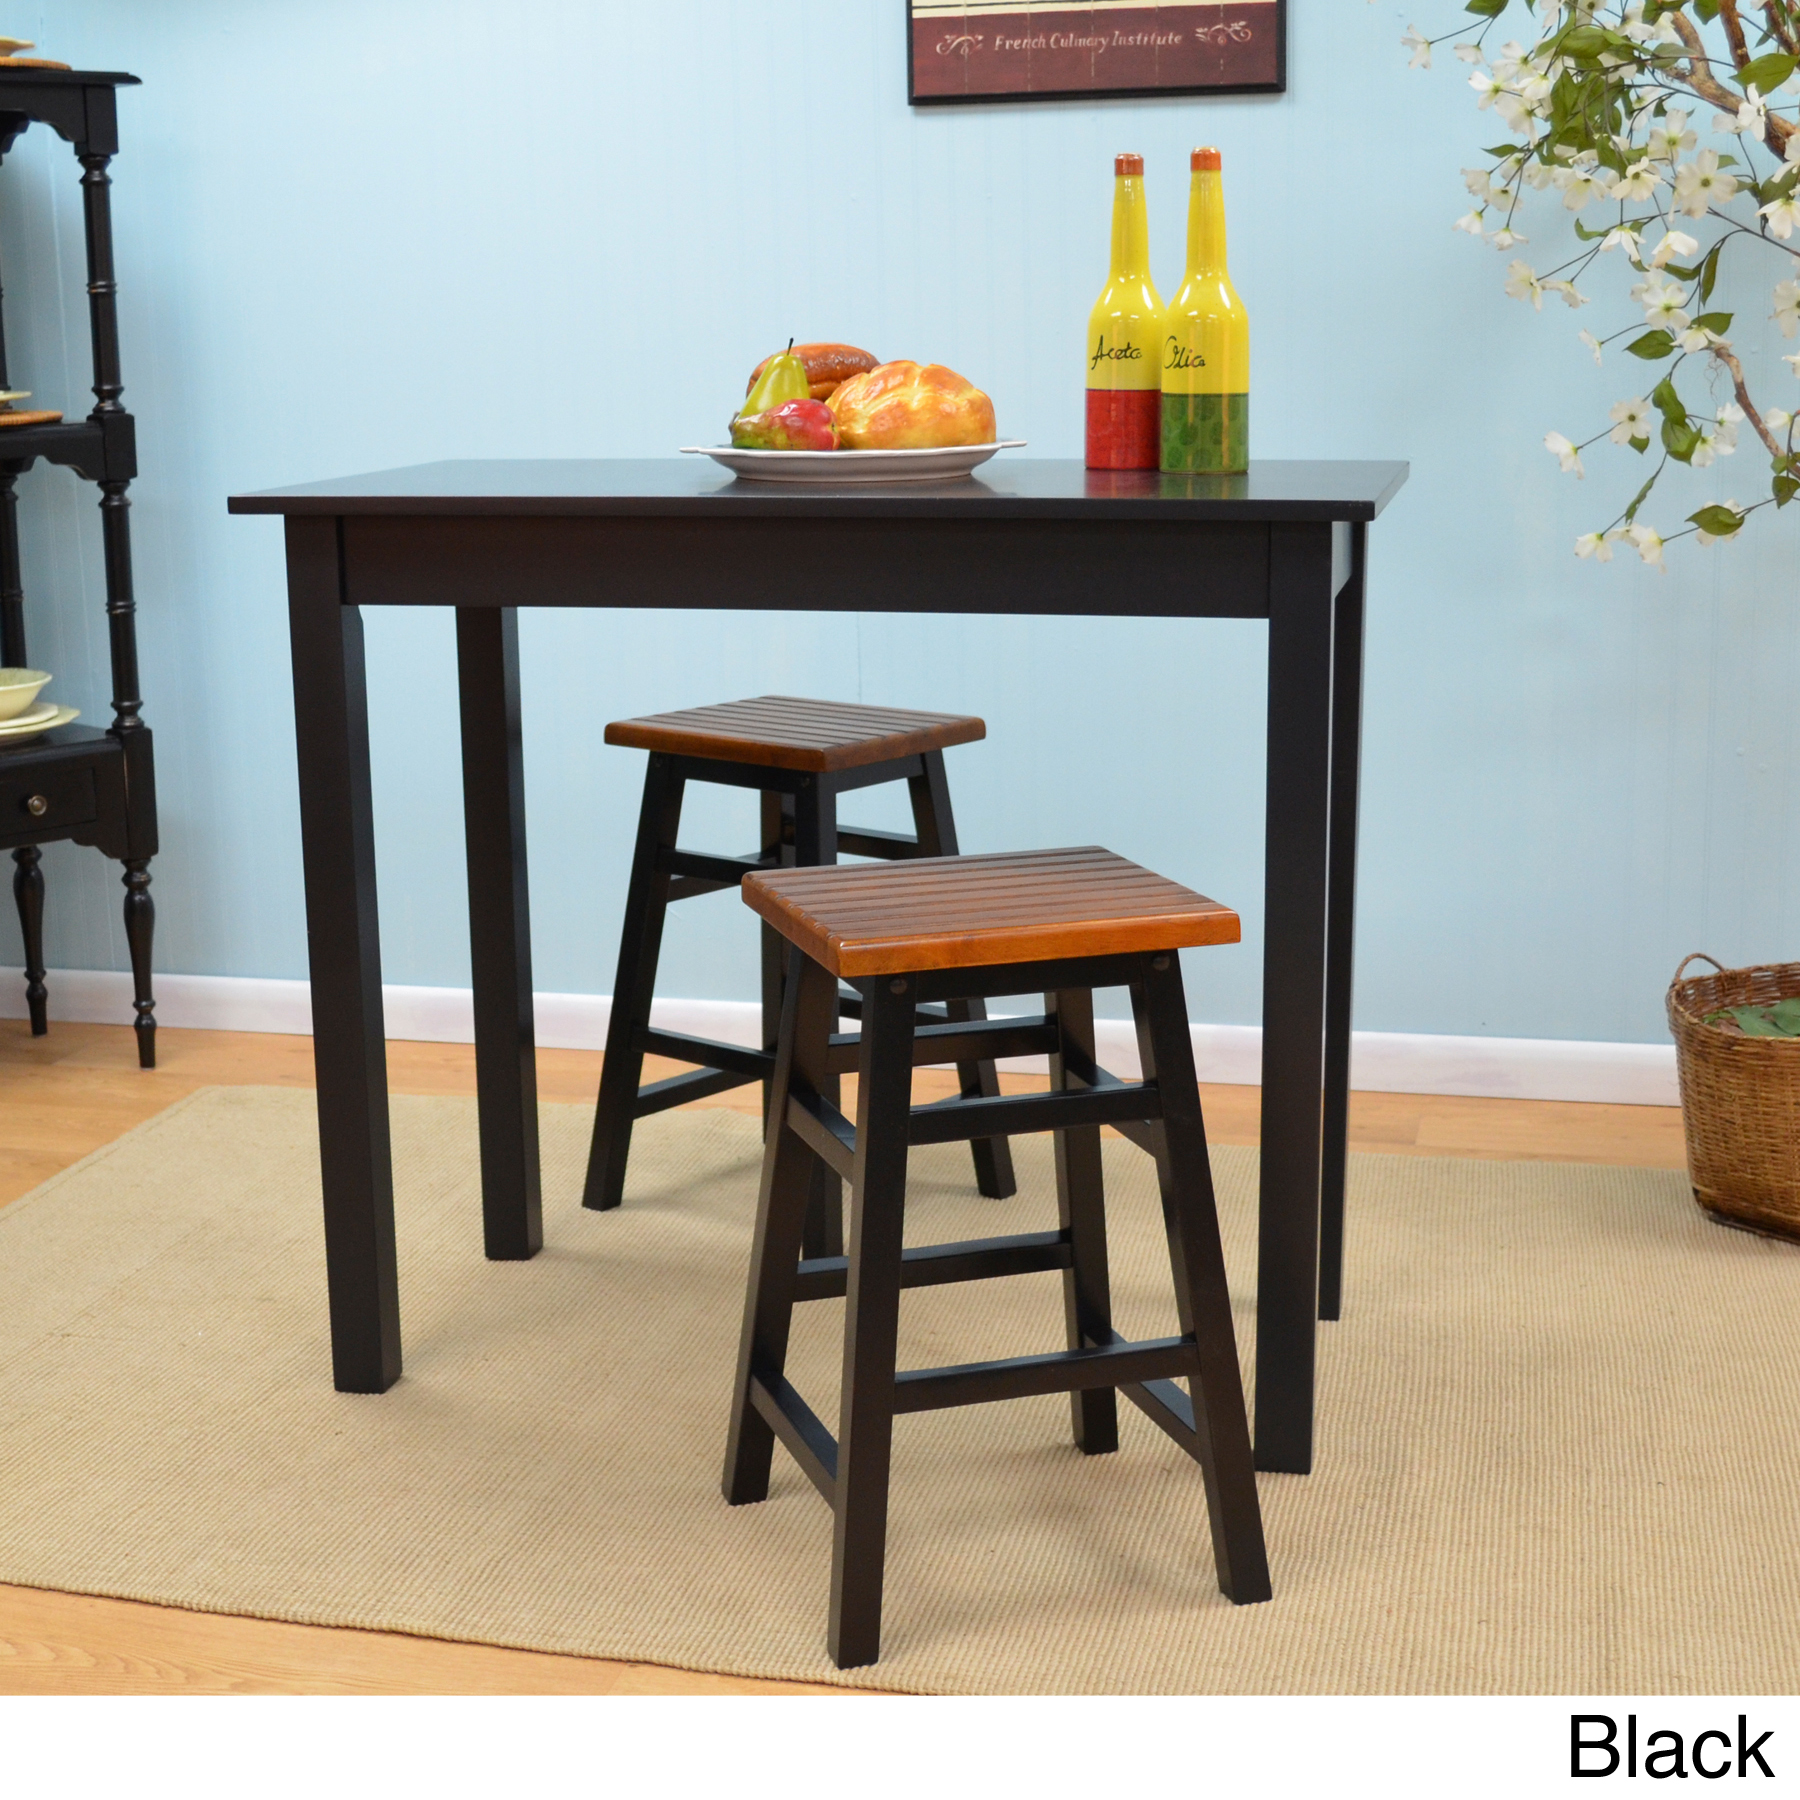 Dining Room Wooden 24 Inch Counter Stools In Black With Brown